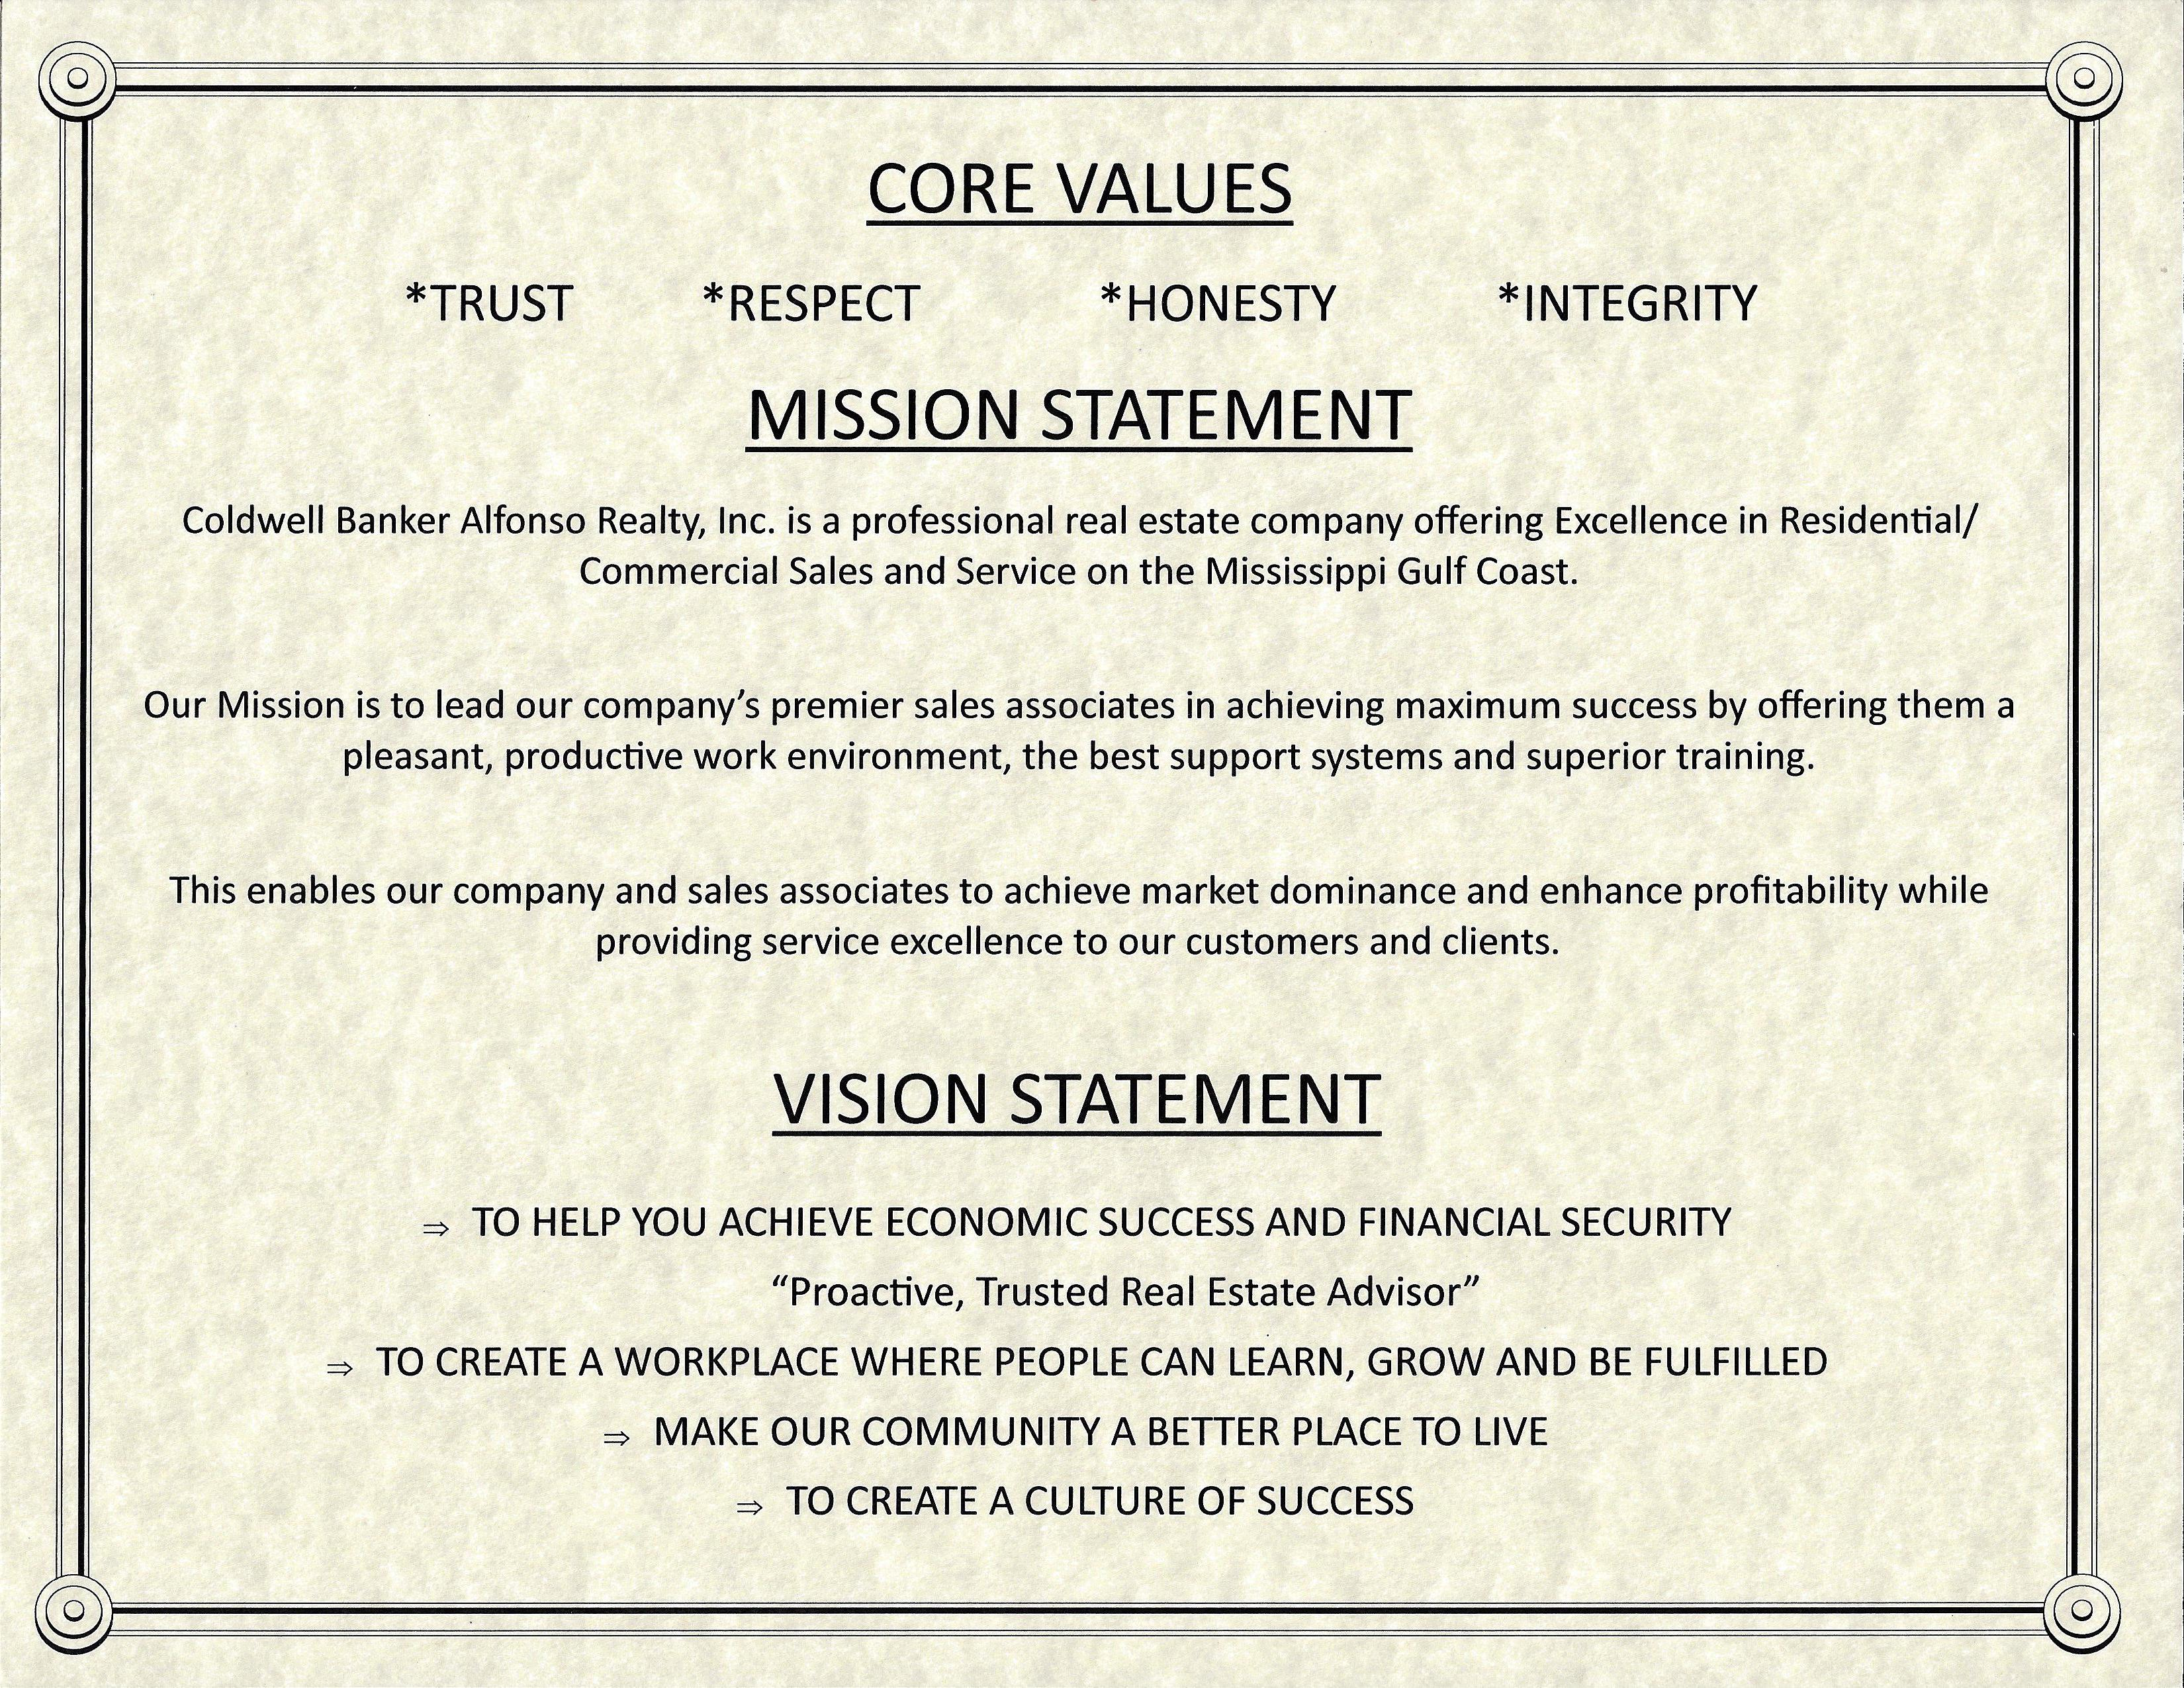 CB Alfonso's Mission Statement